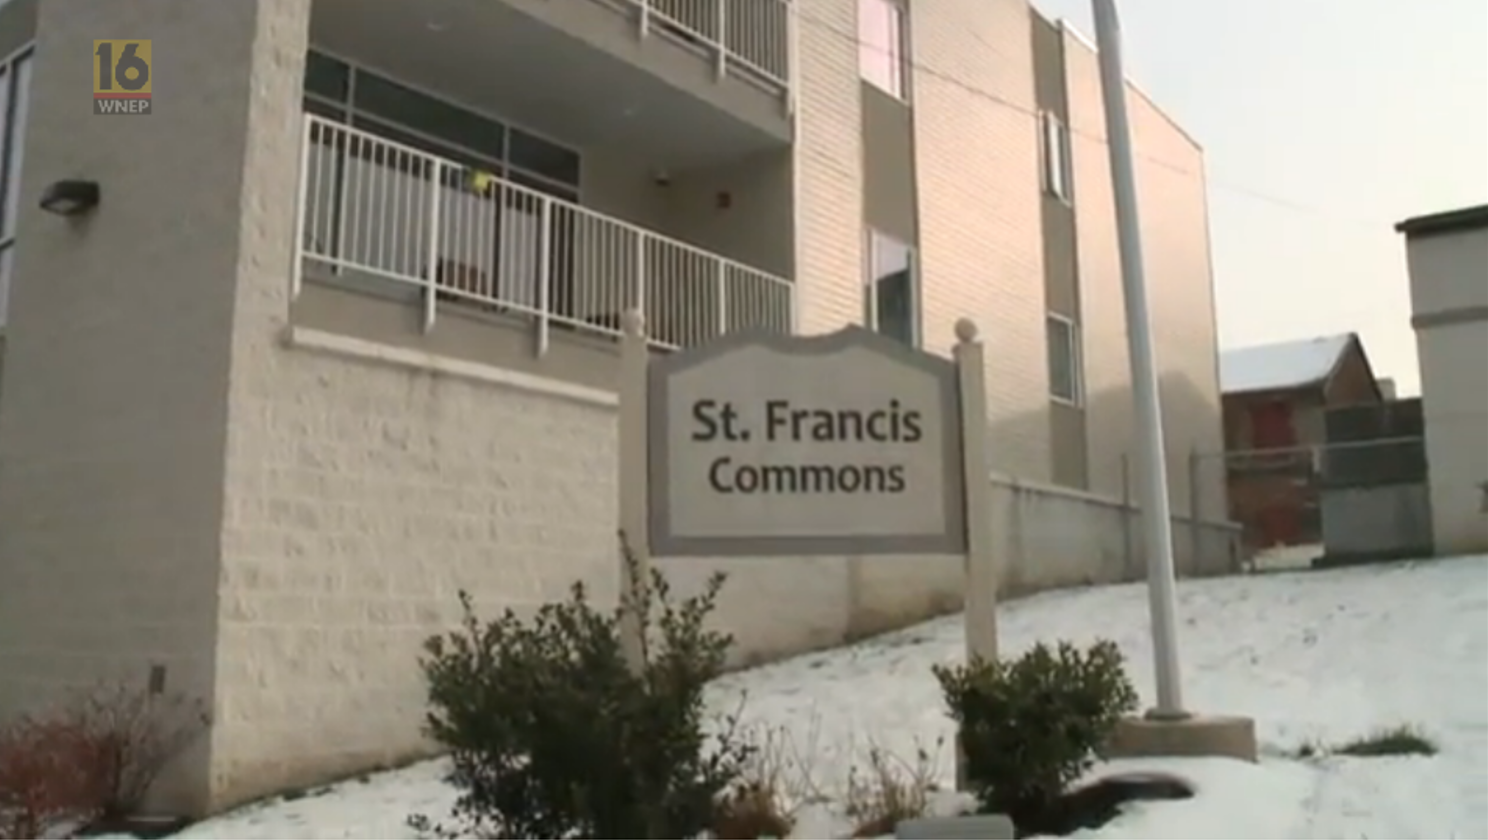 St Francis Commons